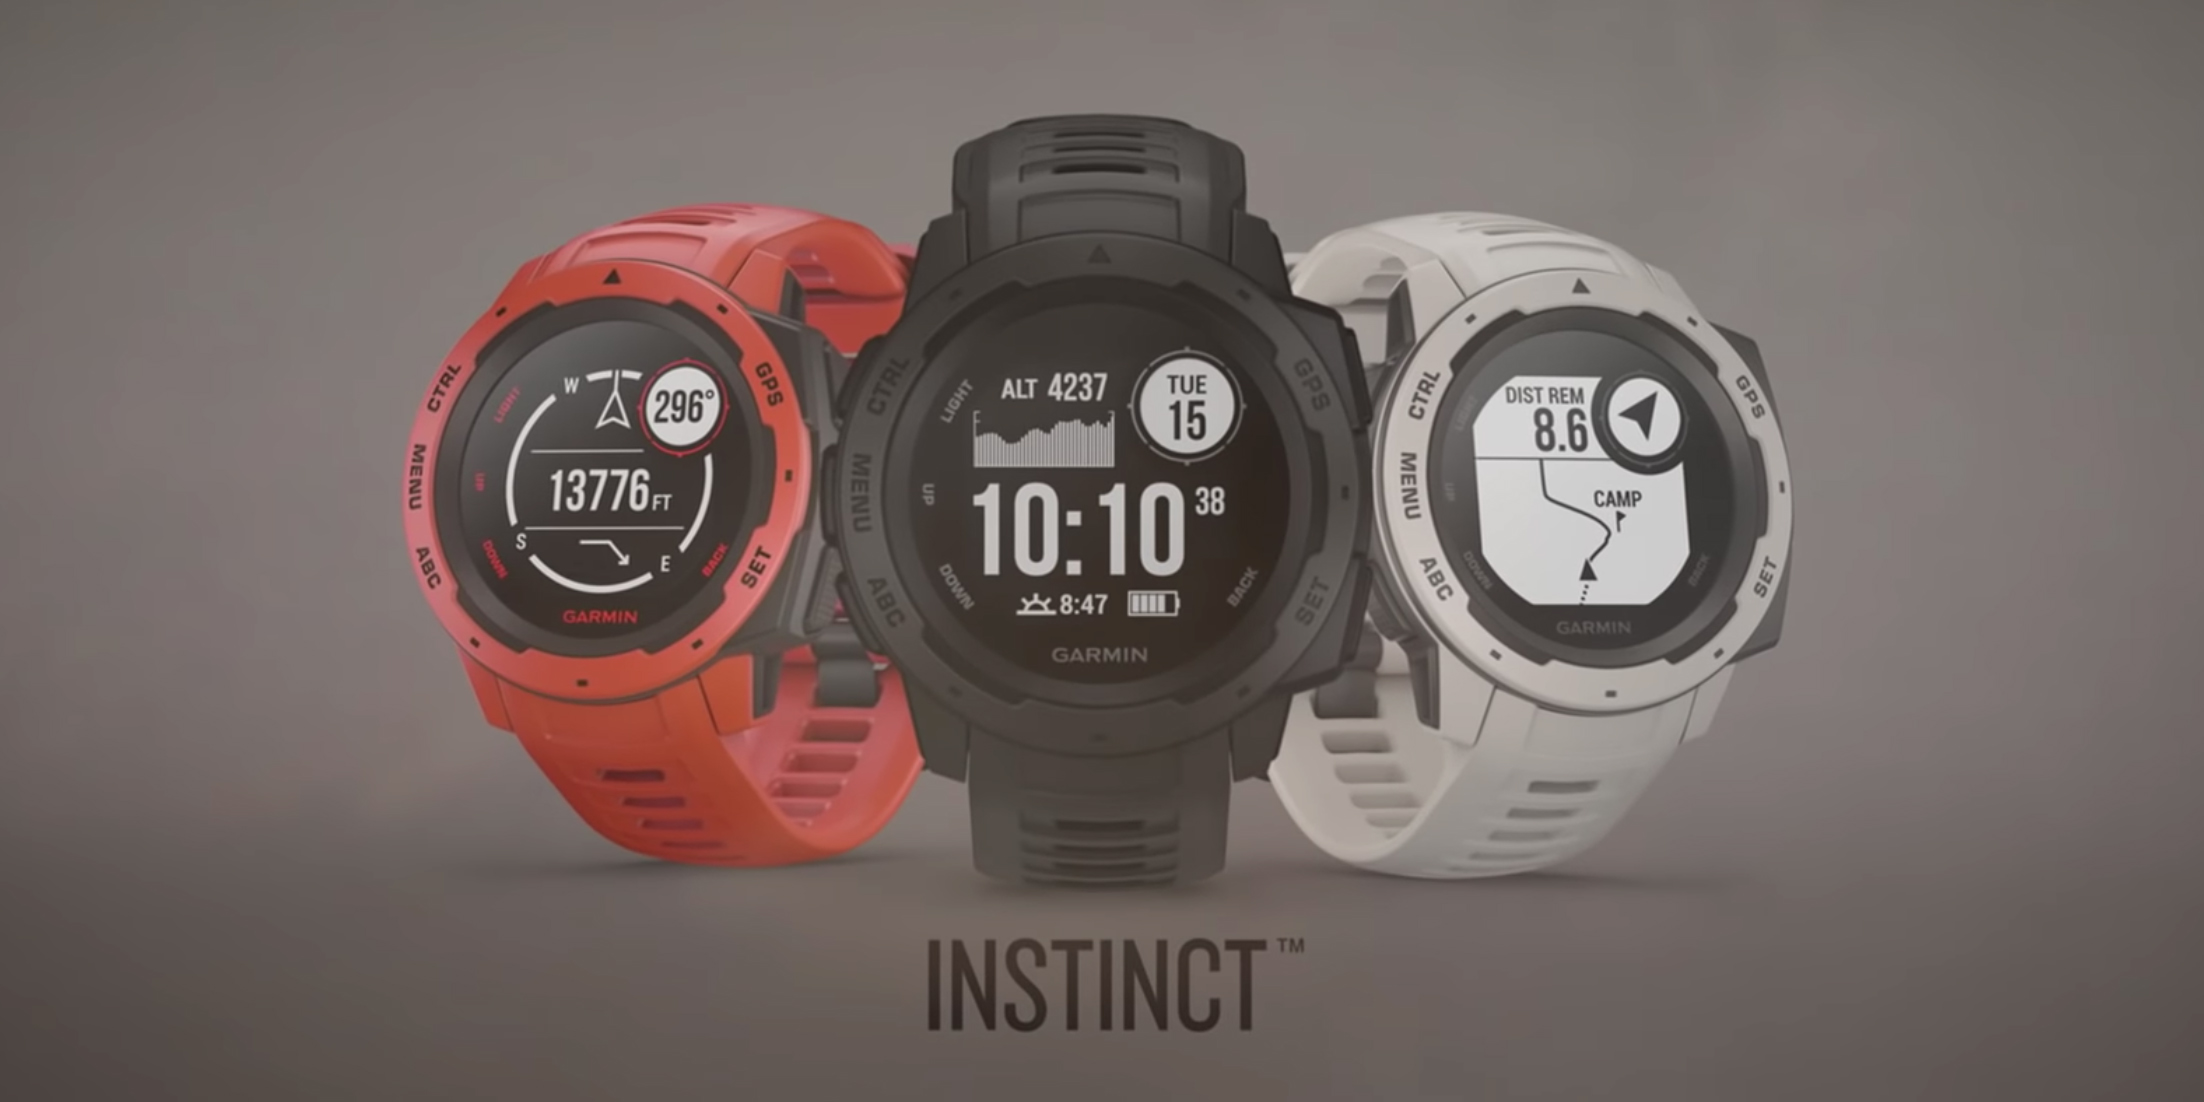 Garmin Instinct smartwatch arrives with rugged build and 14 day battery life